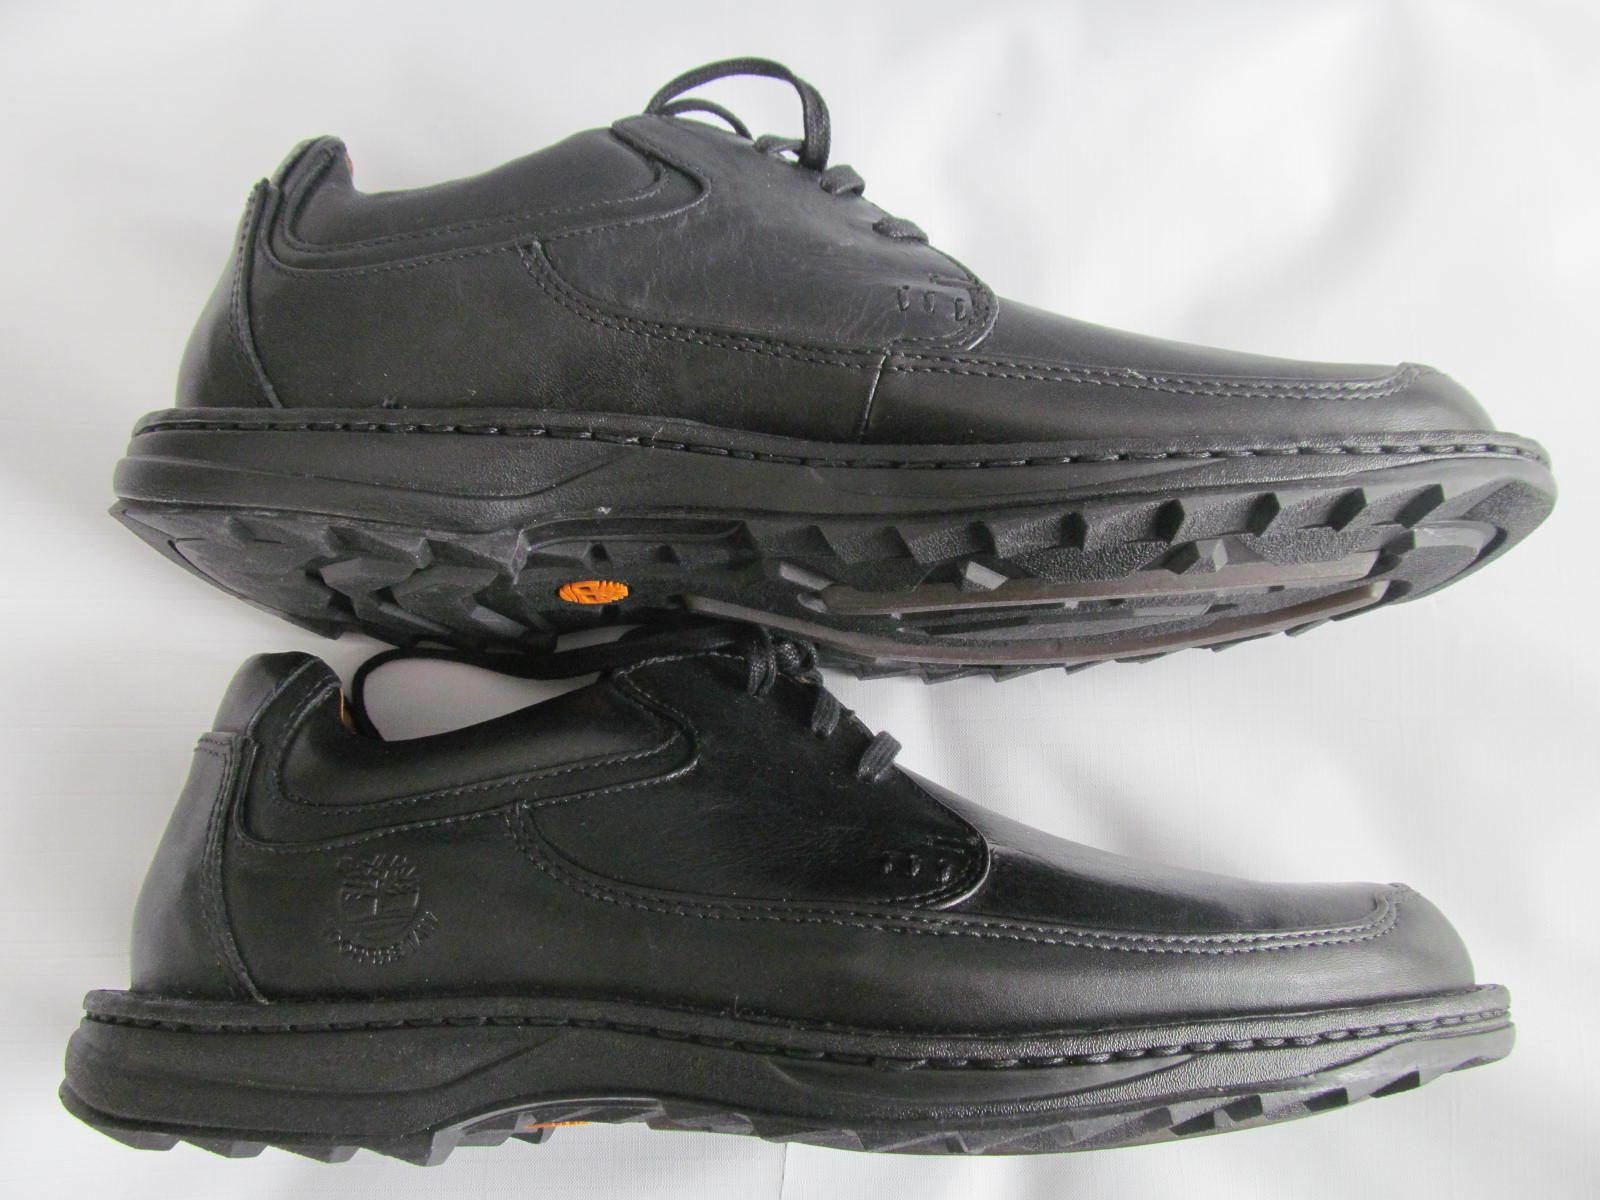 New Timberland Men's Oxford Shoes Black Waterproof Leather size 11/11.5